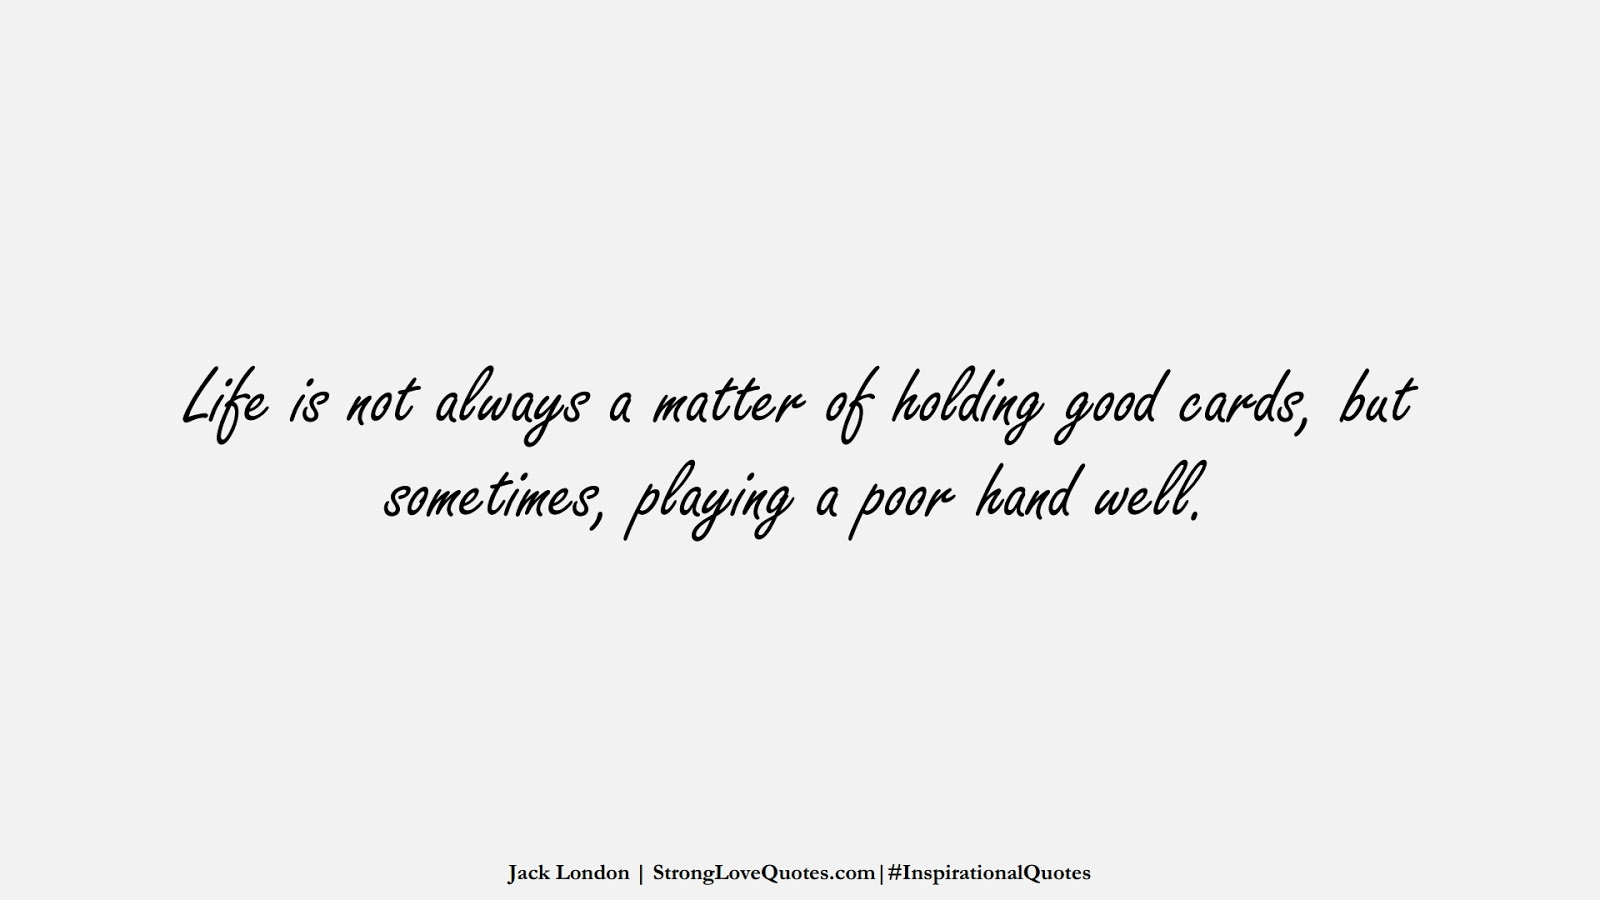 Life is not always a matter of holding good cards, but sometimes, playing a poor hand well. (Jack London);  #InspirationalQuotes